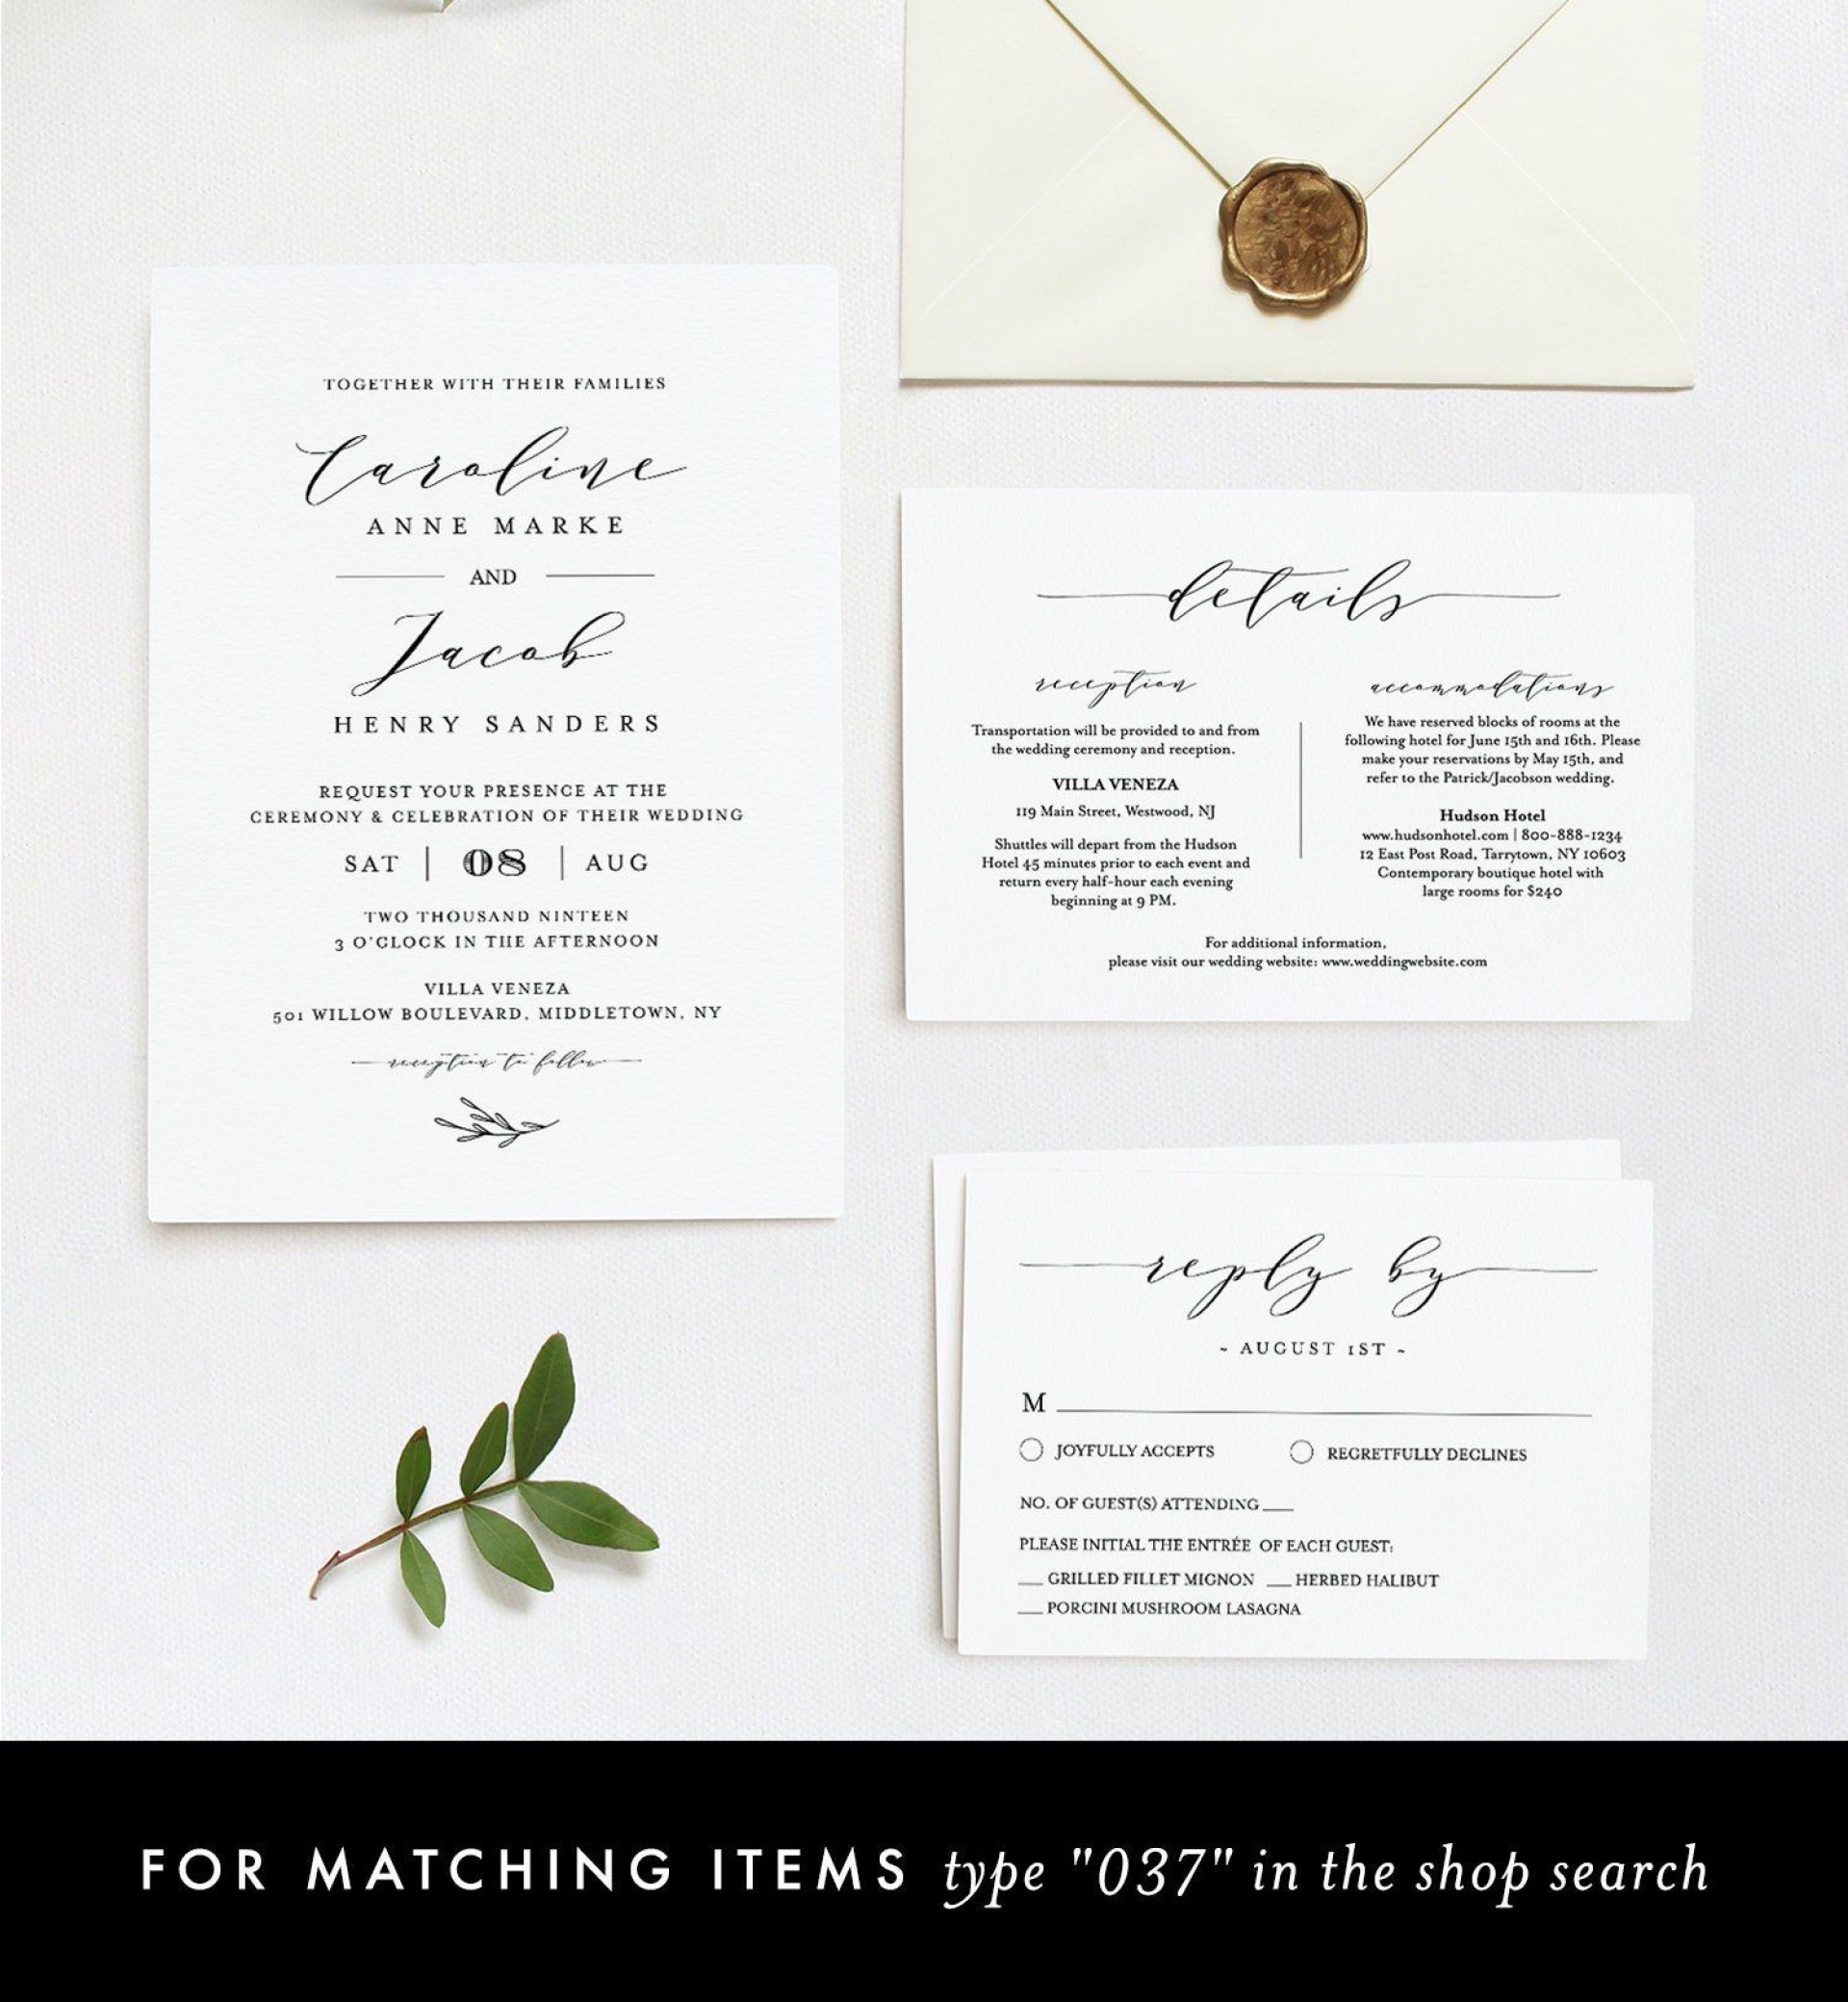 008 Marvelou Wedding Hotel Welcome Letter Template High Definition 1920